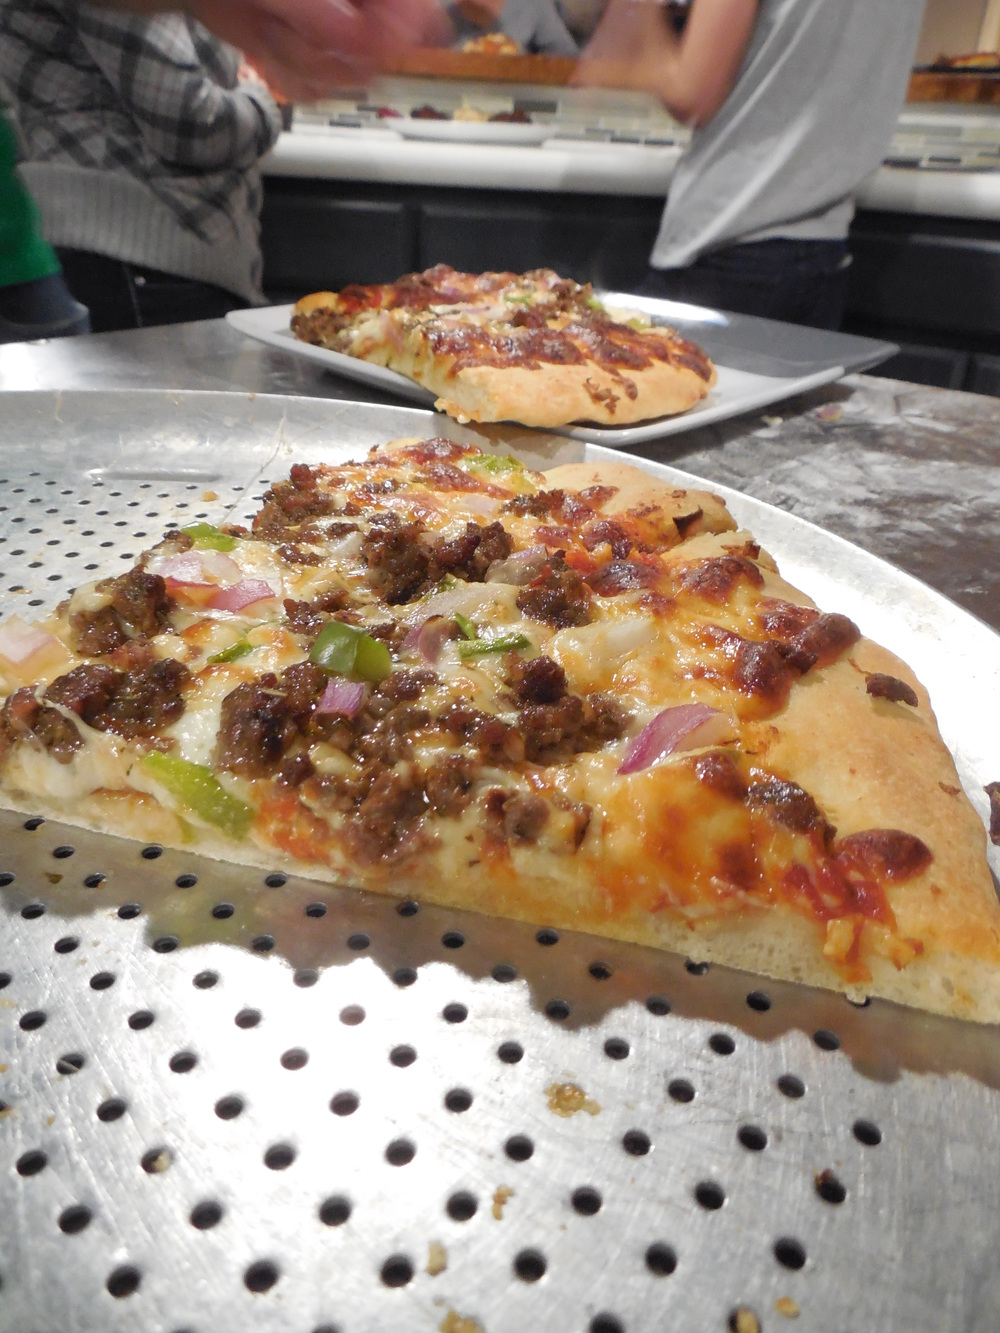 Venison pizza was amazing......probably one of our best ones on record.